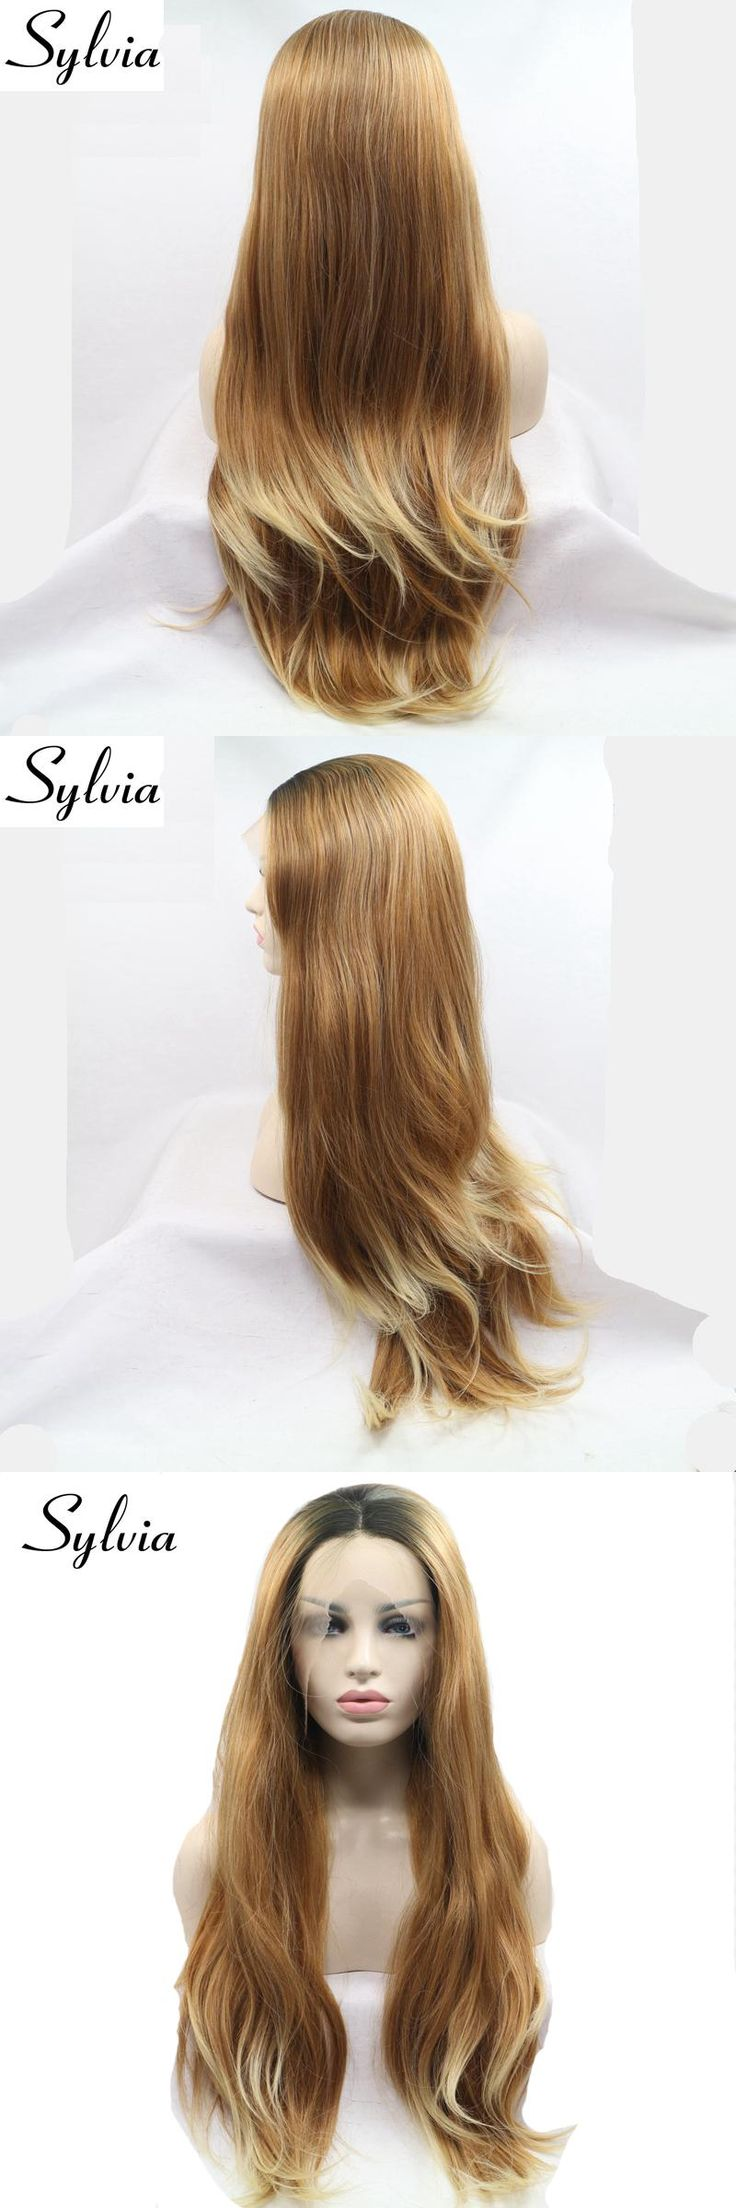 sylvia mixed brown straight synthetic lace front wigs with dark roots blonde tips natural look brown ombre heat resistant fiber